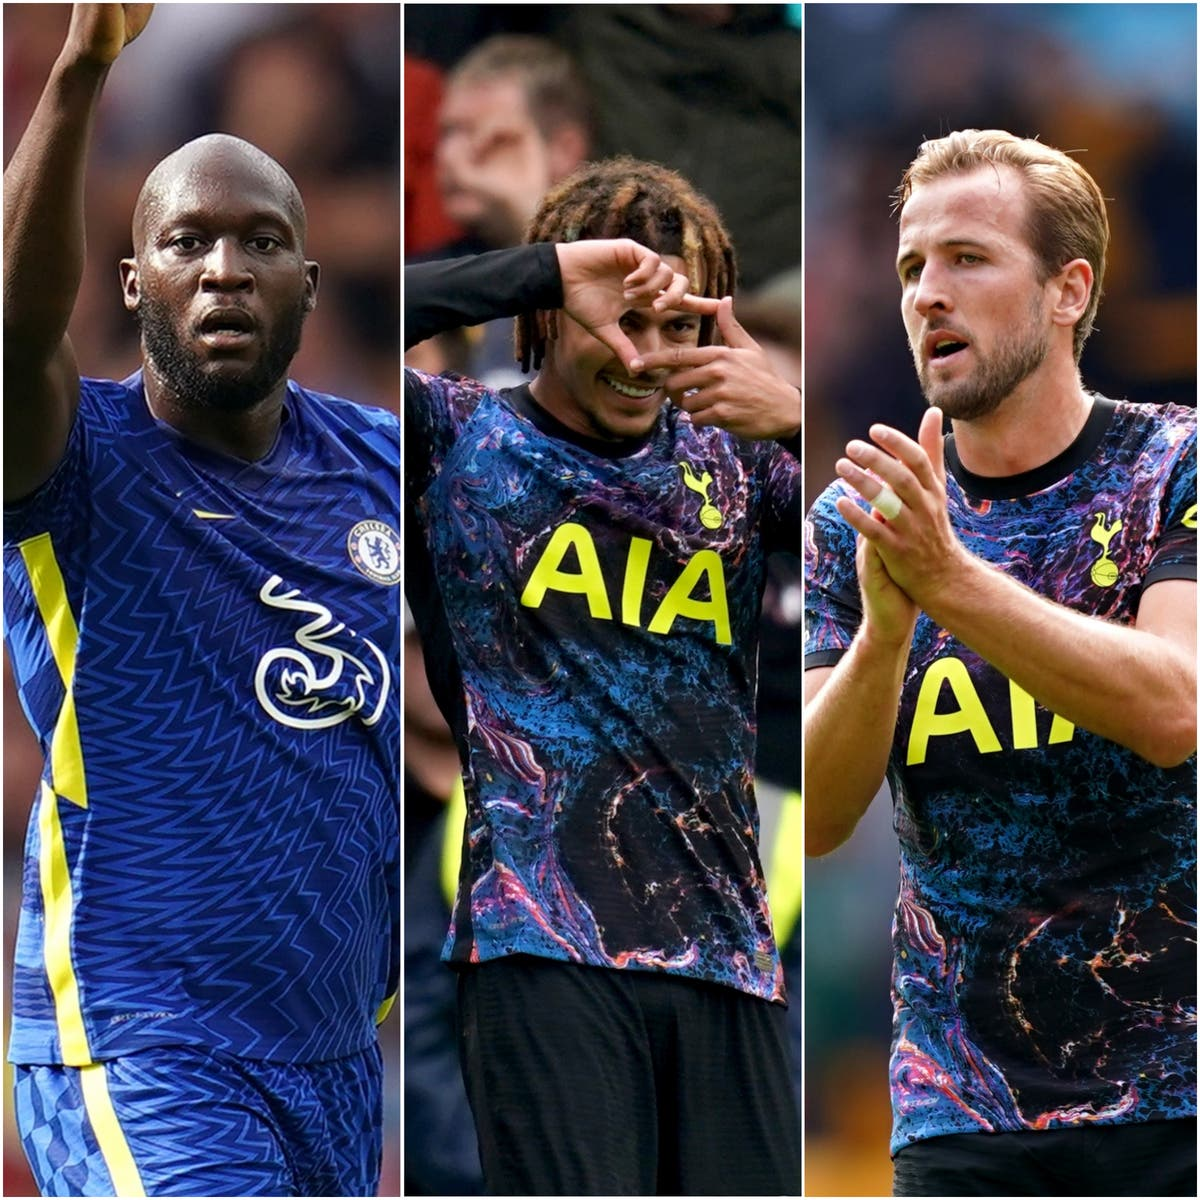 Lukaku scores, and Kane plays in Spurs' victory - Sunday's sporting social